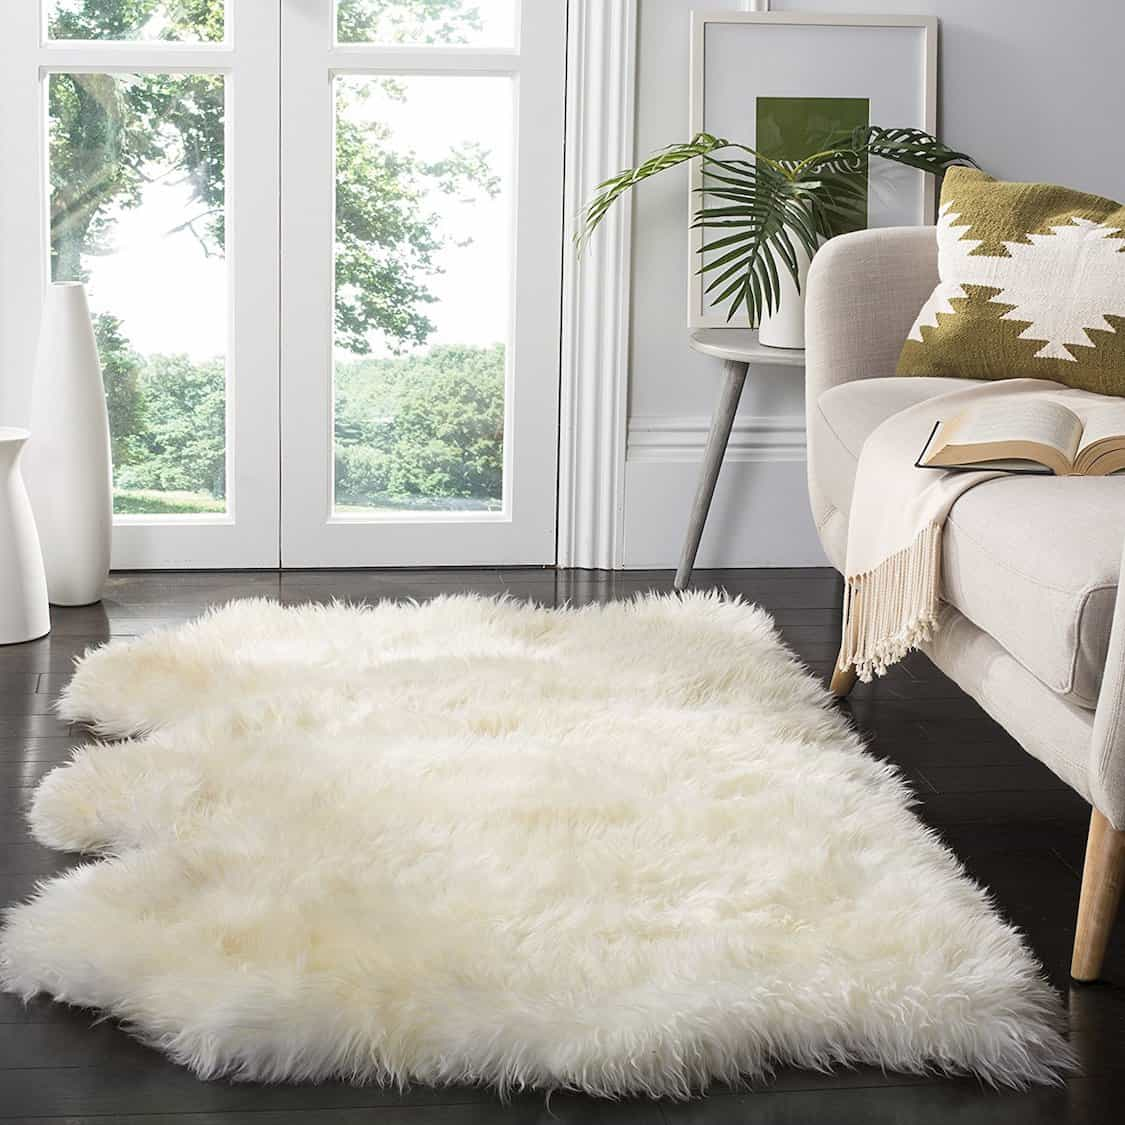 Large Ivory White Sheepskin Rug (Image 12 of 15)